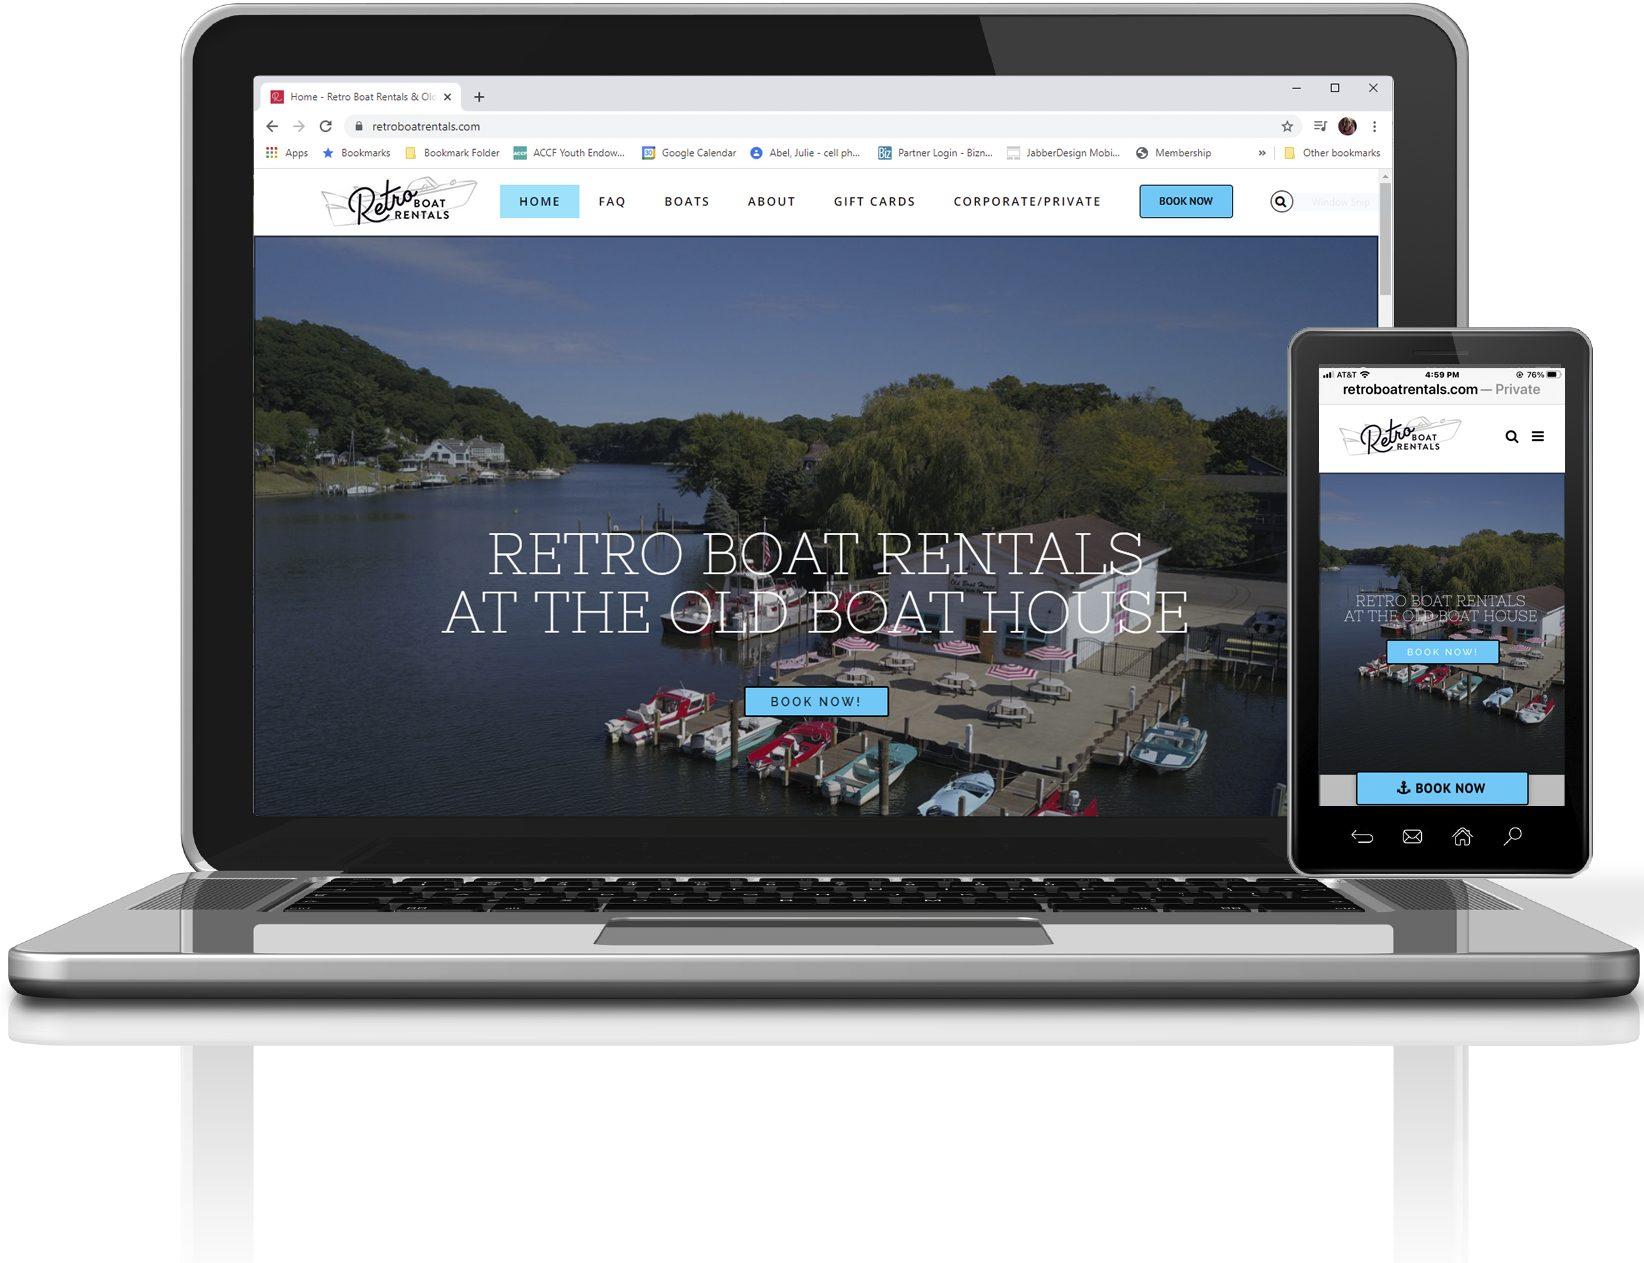 Retro Boat Rentals Website Designed by JabberDesign Website Design & Devleopment